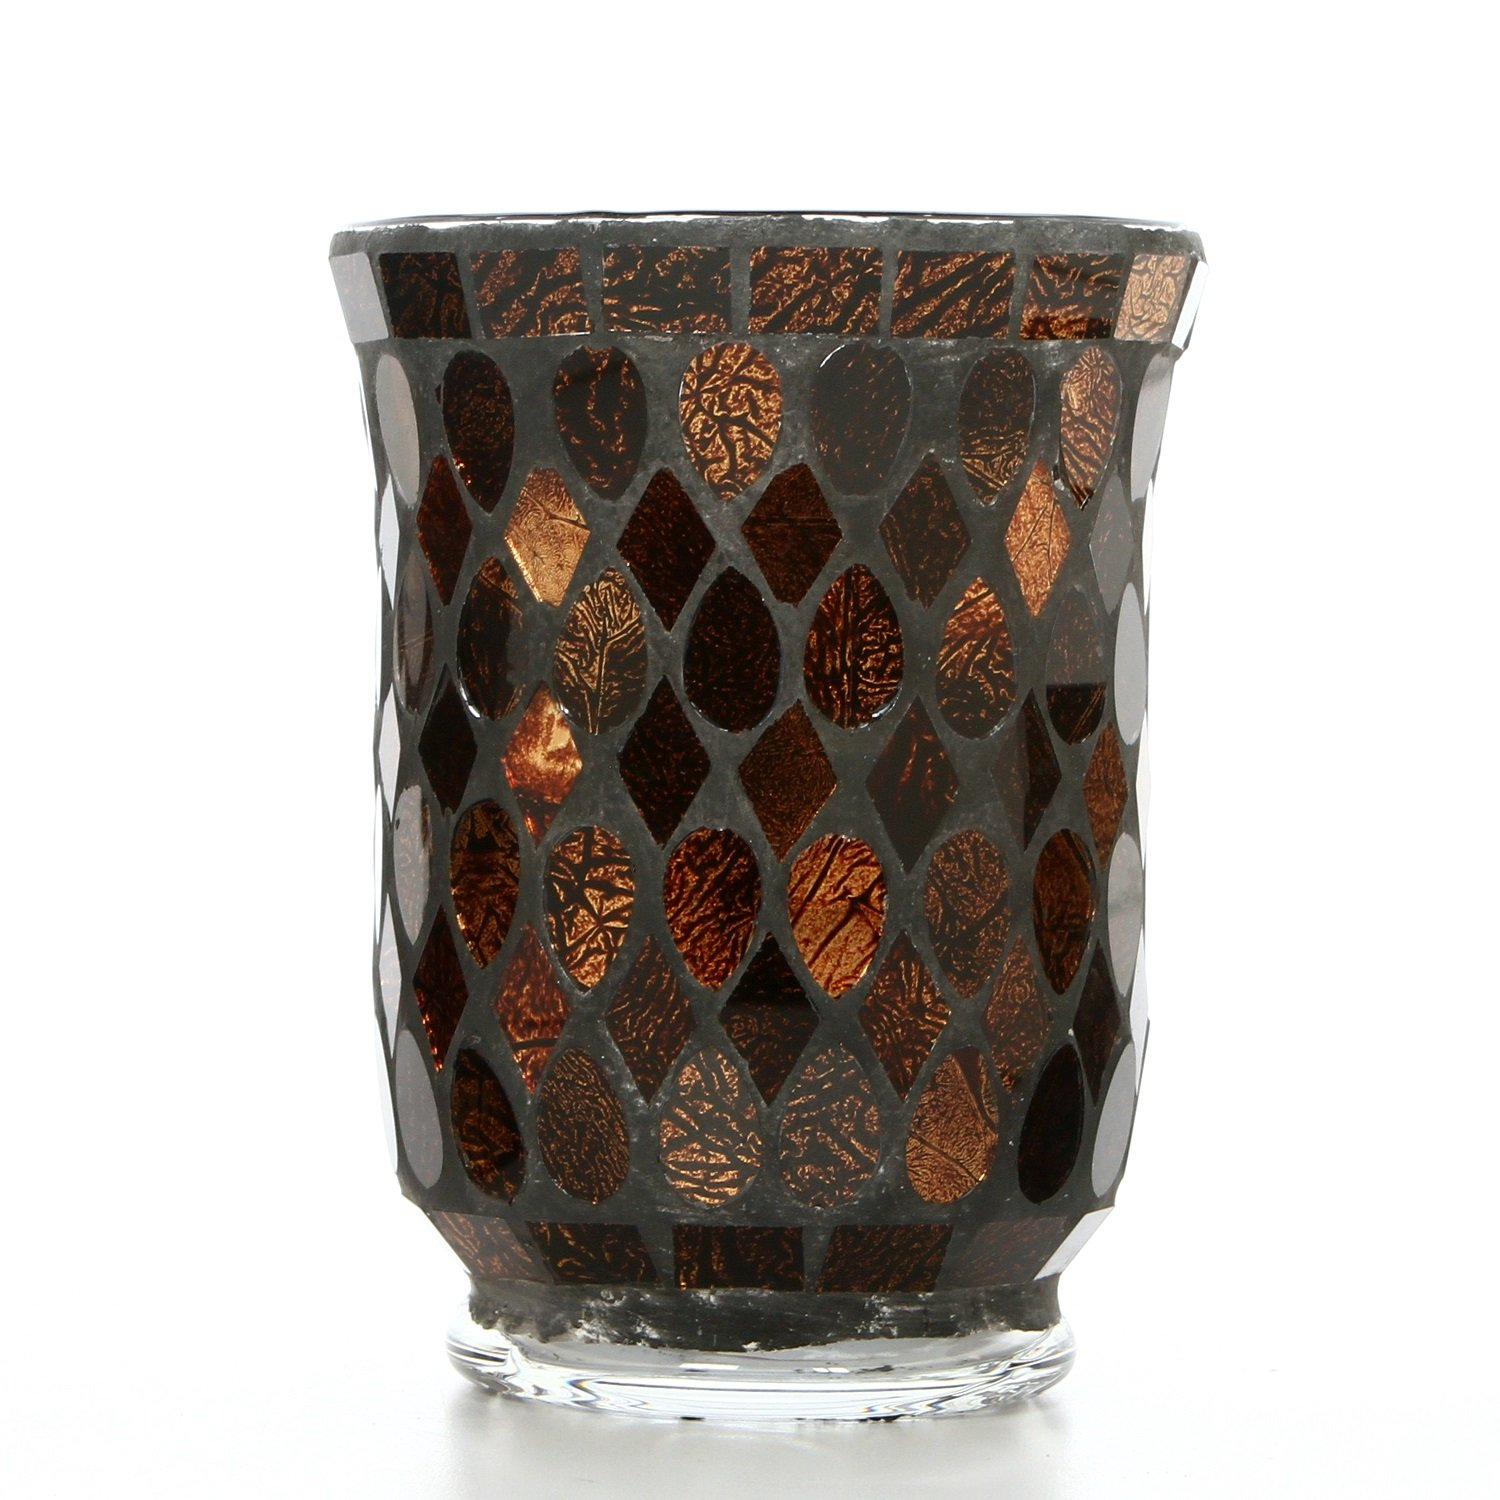 Hosley's Mosaic Glass Hurricane Candle Holder- 5 High. Wonderful Accent Piece for Coffee or Side Tables. Ideal Gift for Weddings, Home, Events P1. HG Global